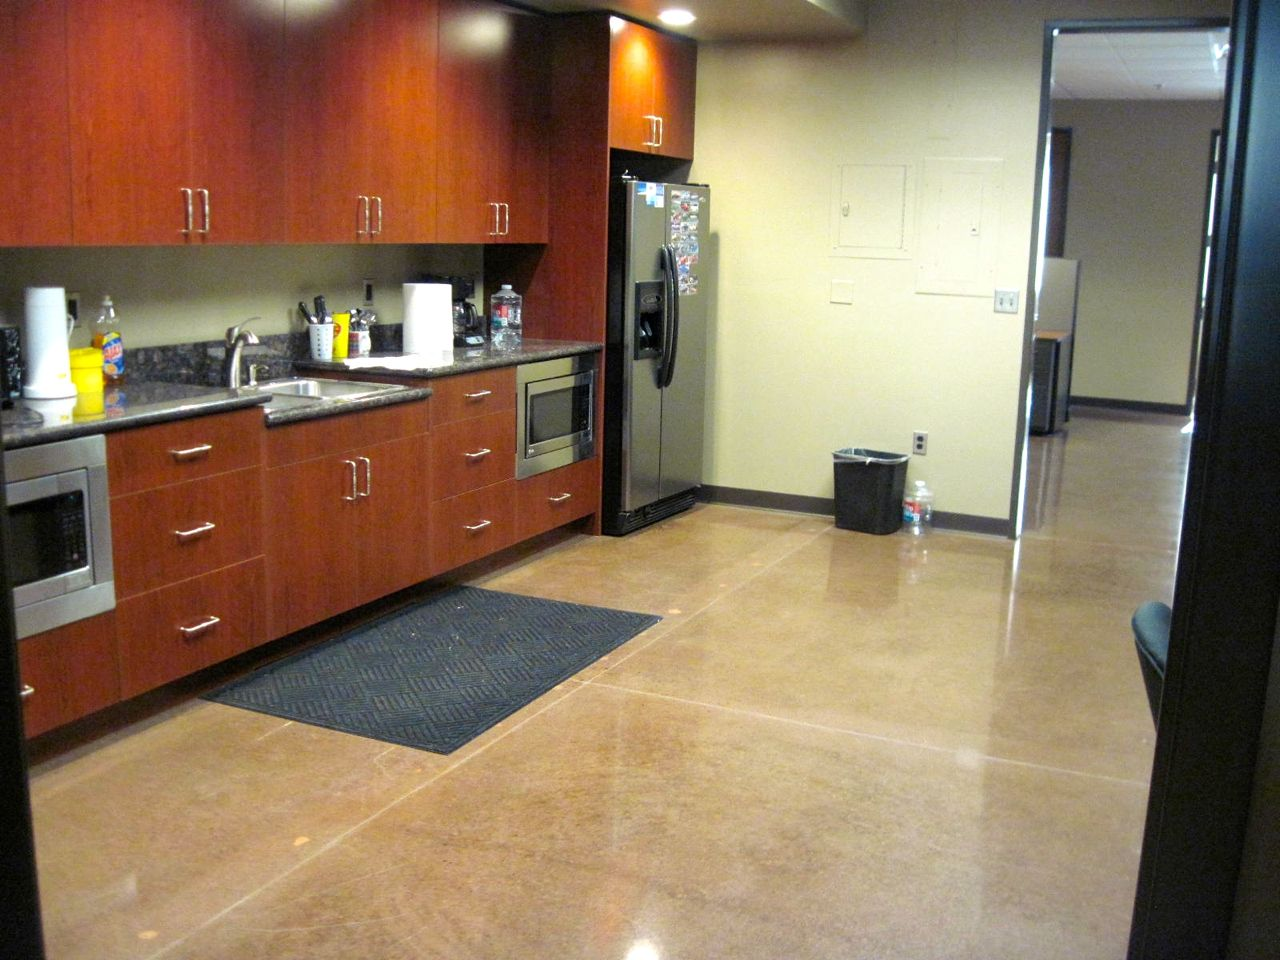 Polished Concrete - TNT Resurfacing Concrete Inc.